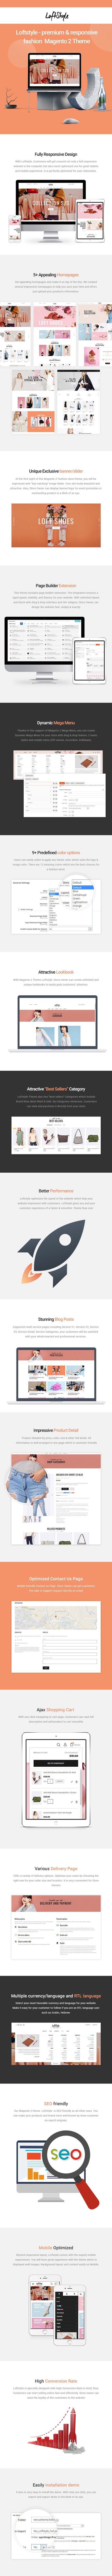 Best 134 Magento Themes & Templates images on Pinterest